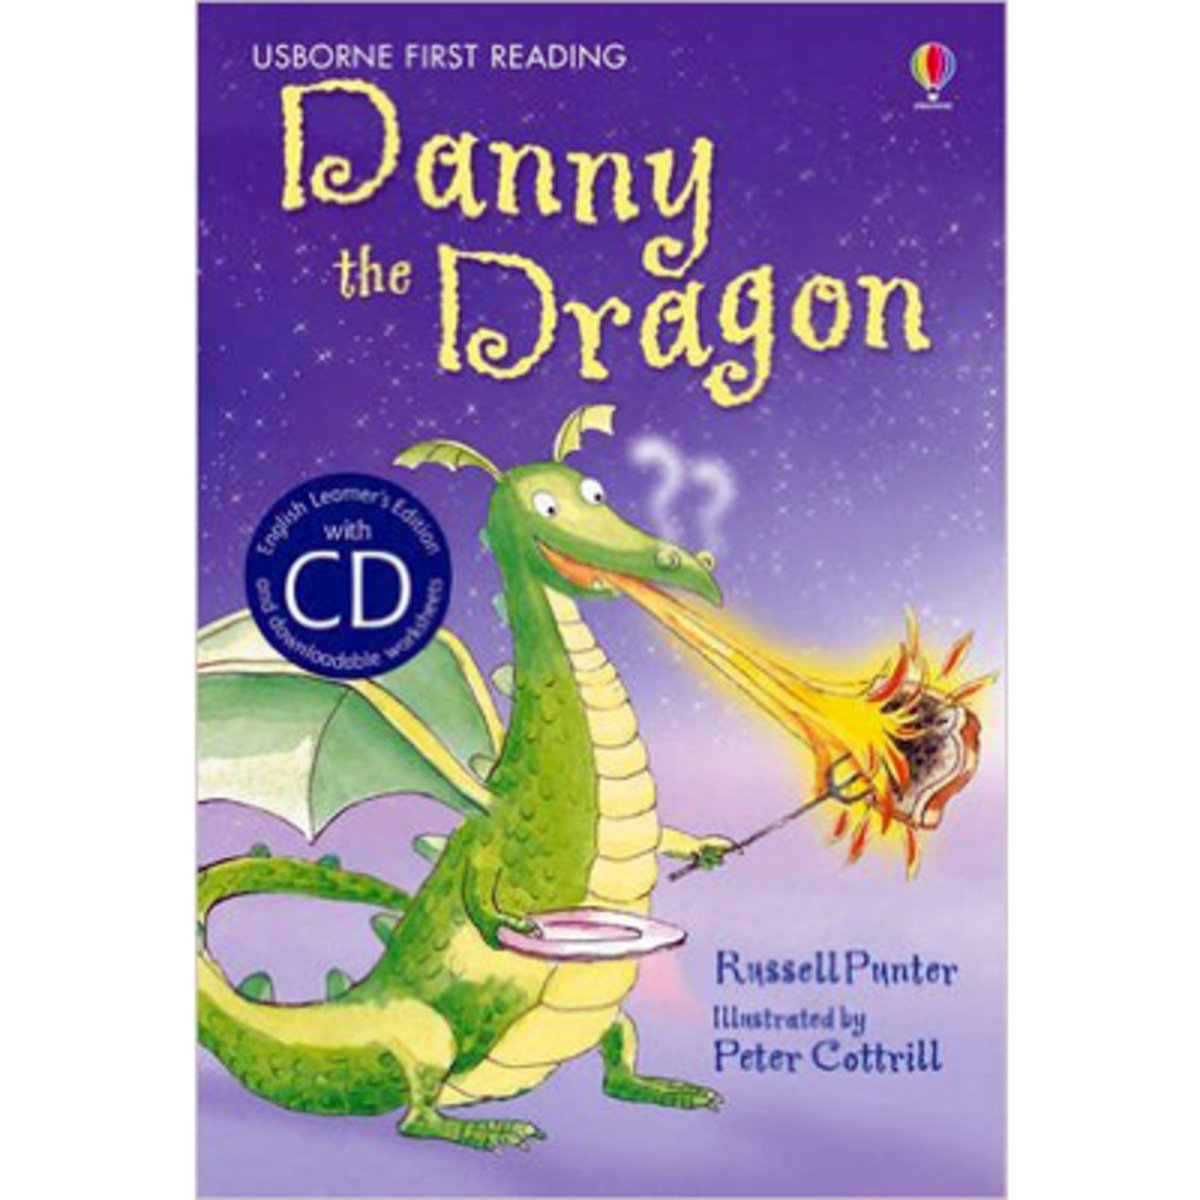 Danny the Dragon-First Reading 3 with CD